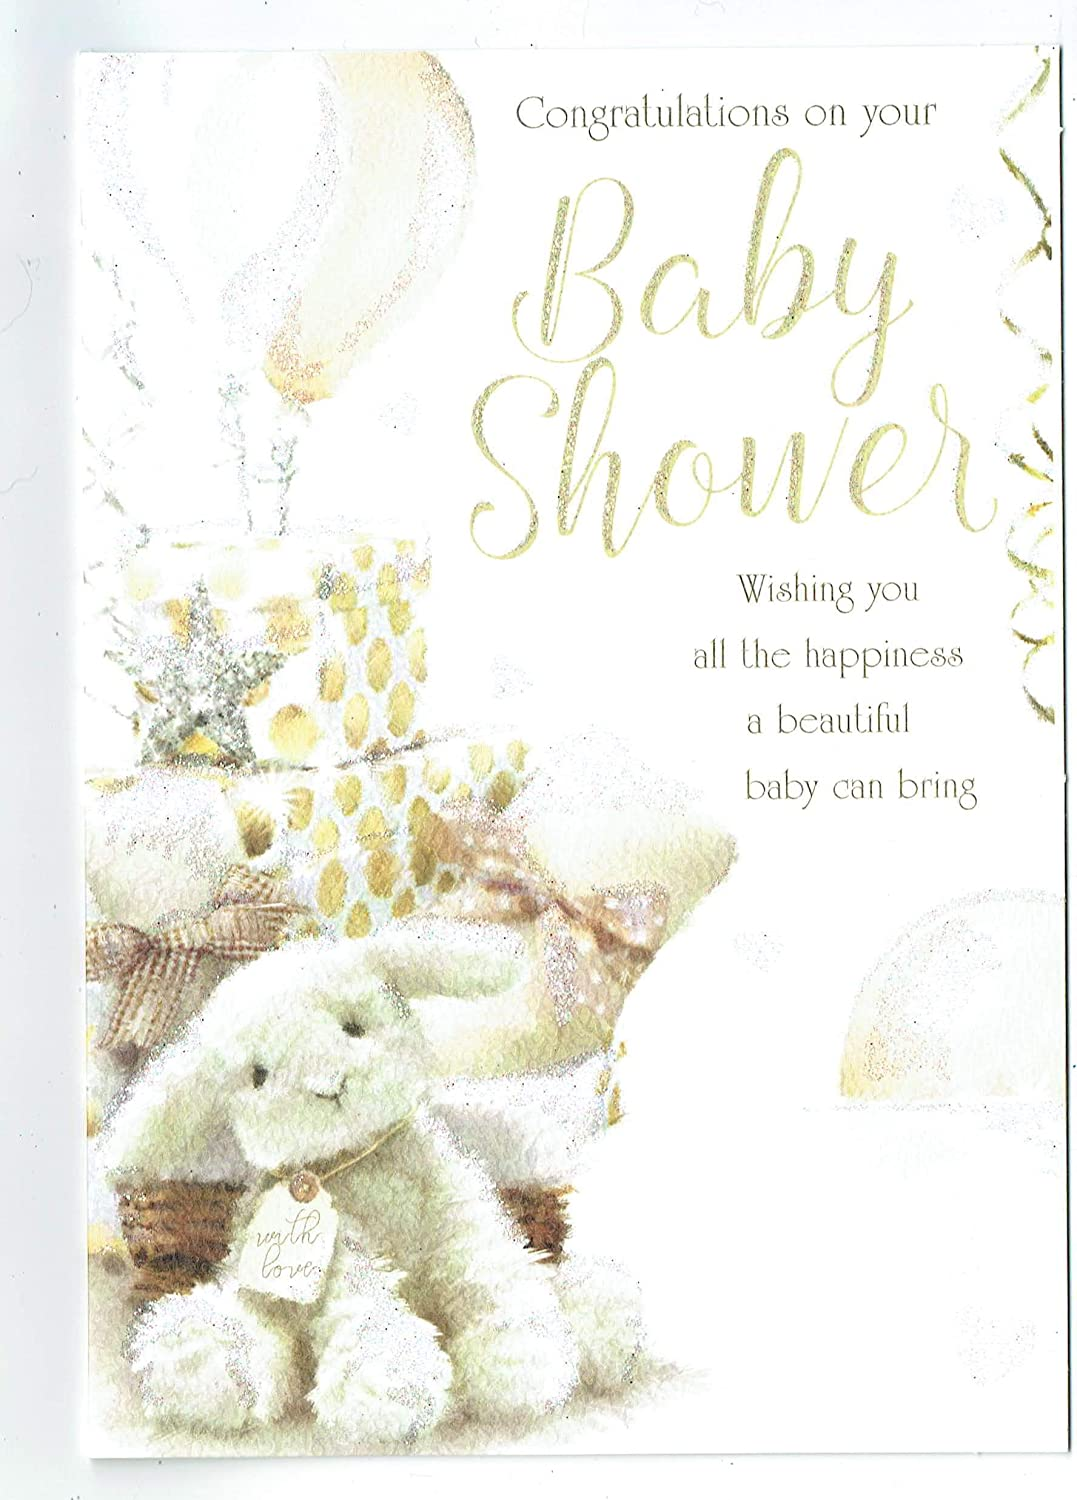 Baby Shower Card With Lovely Cream Gold And Glitter Design Out Of